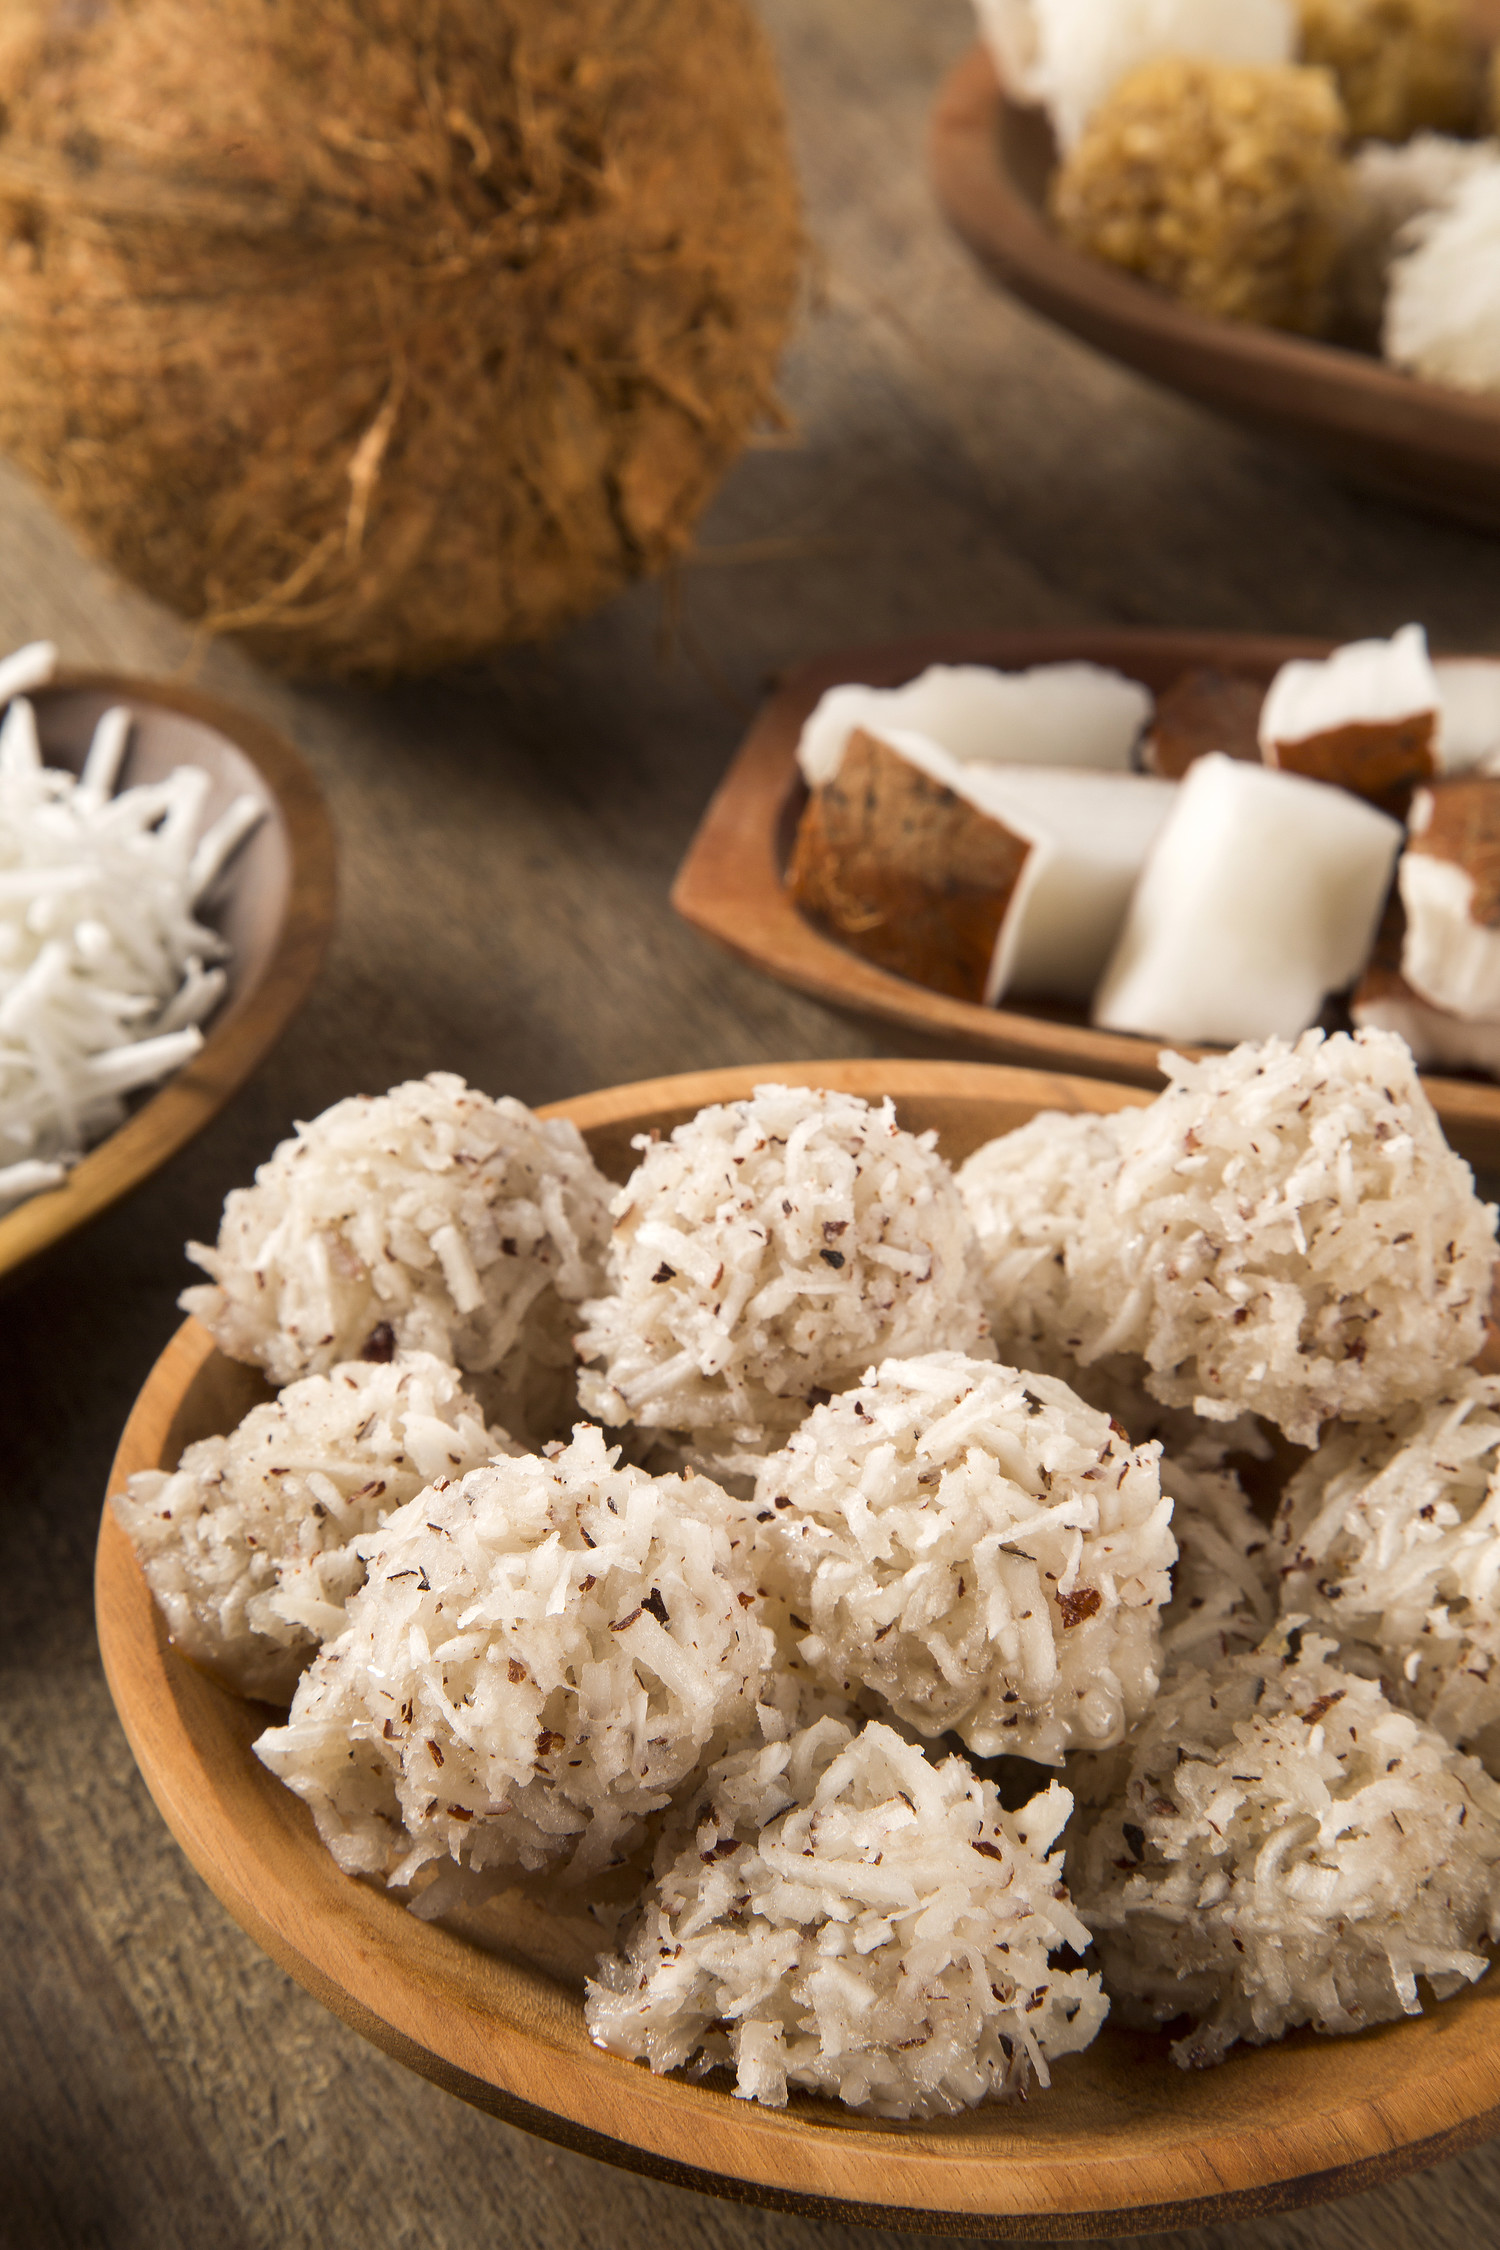 Panamanian cocada dessert, dessert balls covered in coconut in a bowl with coconut in the background.